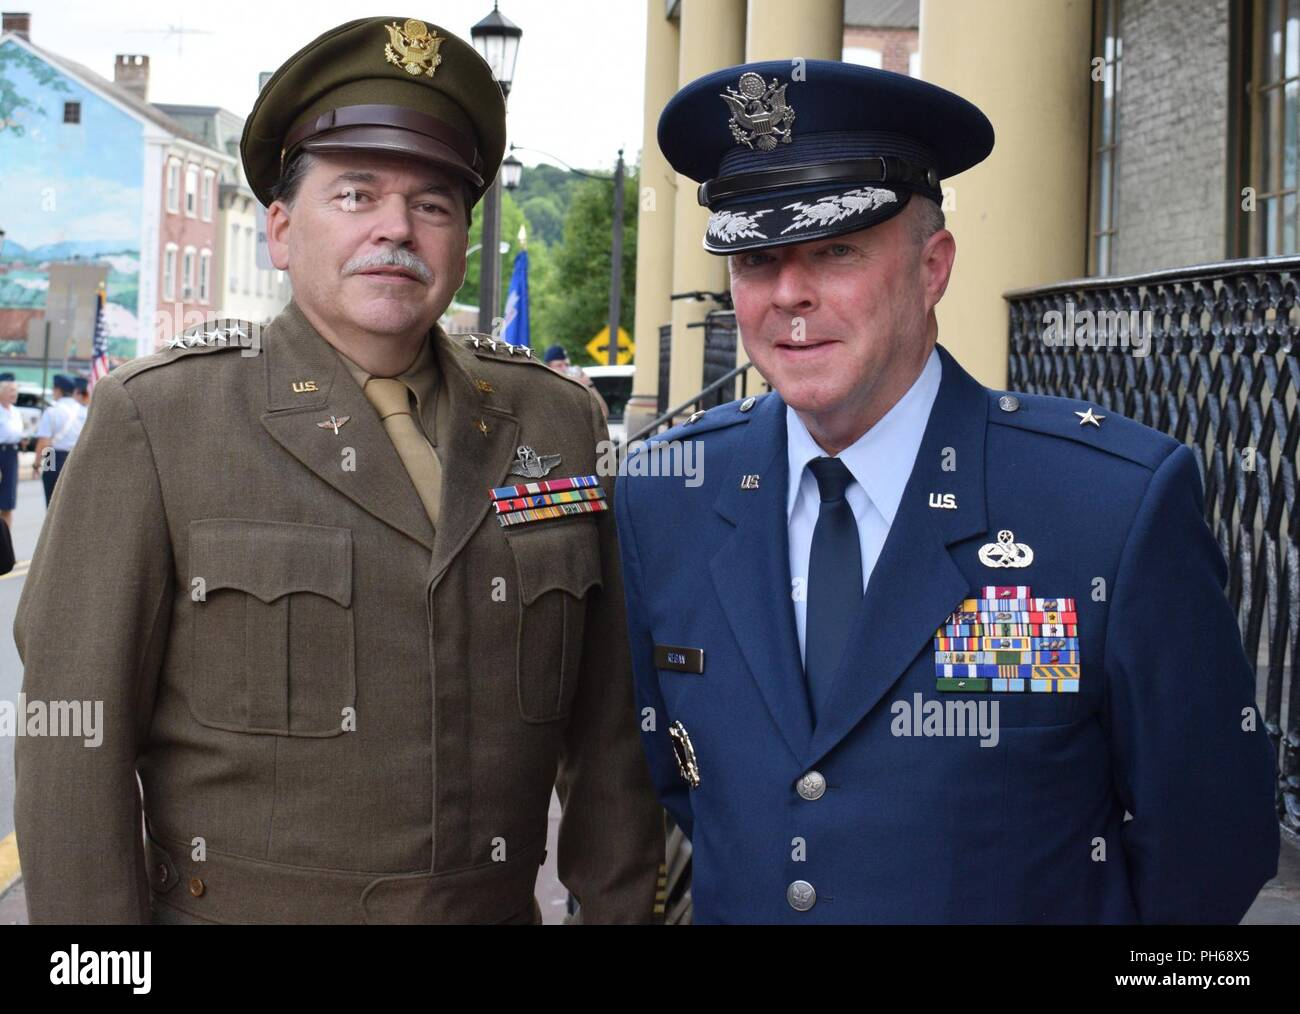 Brig. Gen. Michael Regan, Pa. deputy adjutant general-air (right), rubs shoulders with Gen. Carl Spaatz re-enactor Chris Boswell following a road dedication ceremony in Boyertown, Pa. June 28, 2018. Spaatz, the first Chief of Staff of the newly formed Air Force following the enactment of the National Security Act of 1947 grew up in Boyertown and is touted as one of their greatest citizens. - Stock Image